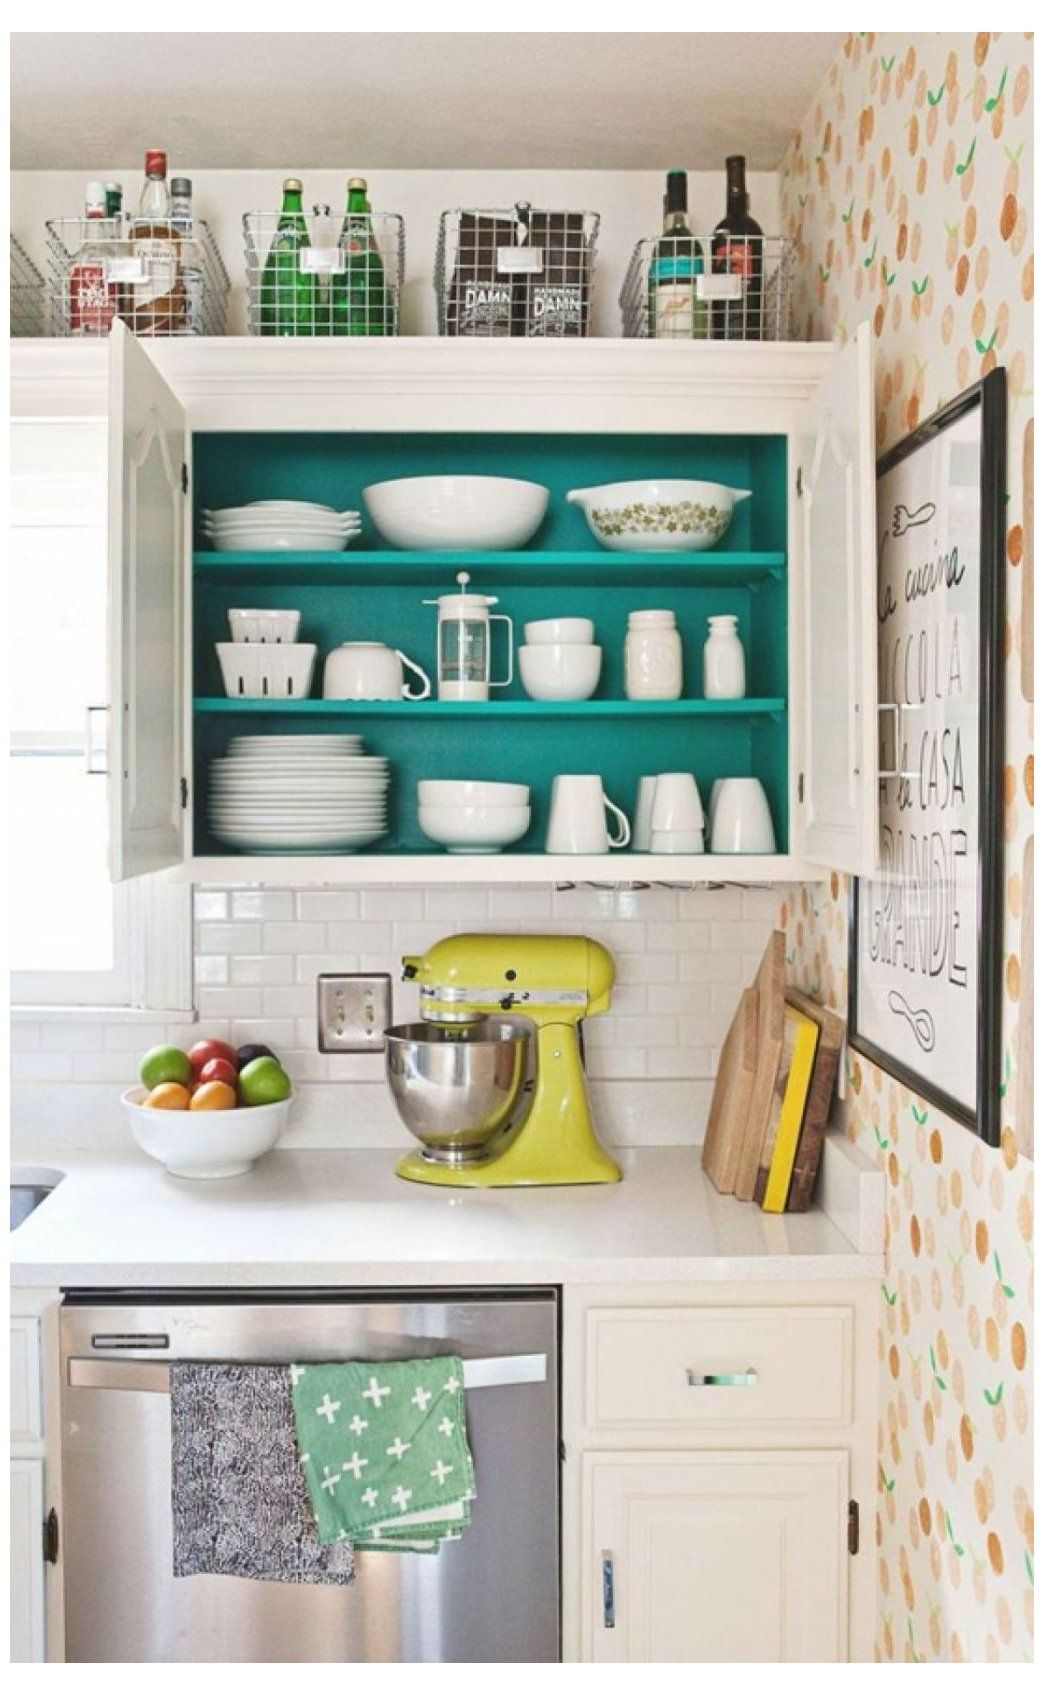 Pin By Ashley Kurschner On Remodel In 2020 Above Kitchen Cabinets Decorating Above Kitchen Cabinets Corner Kitchen Cabinet